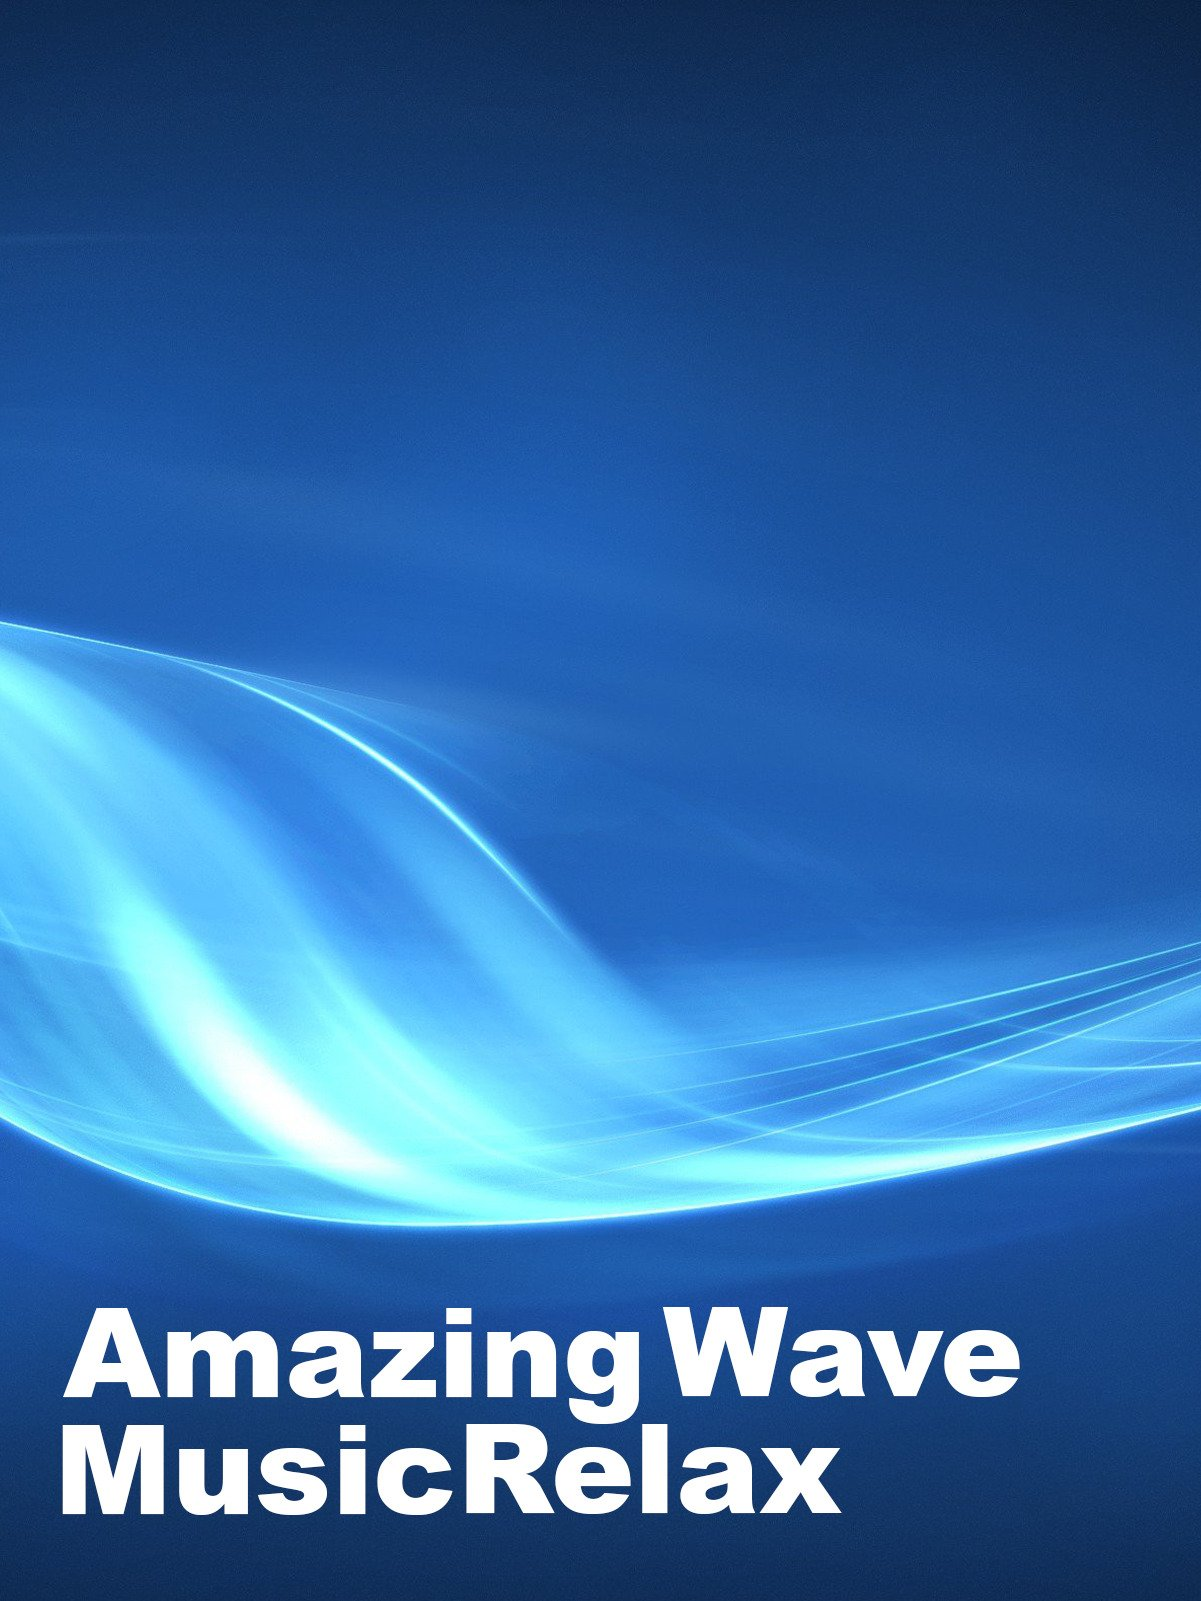 Amazing Wave Music Relax